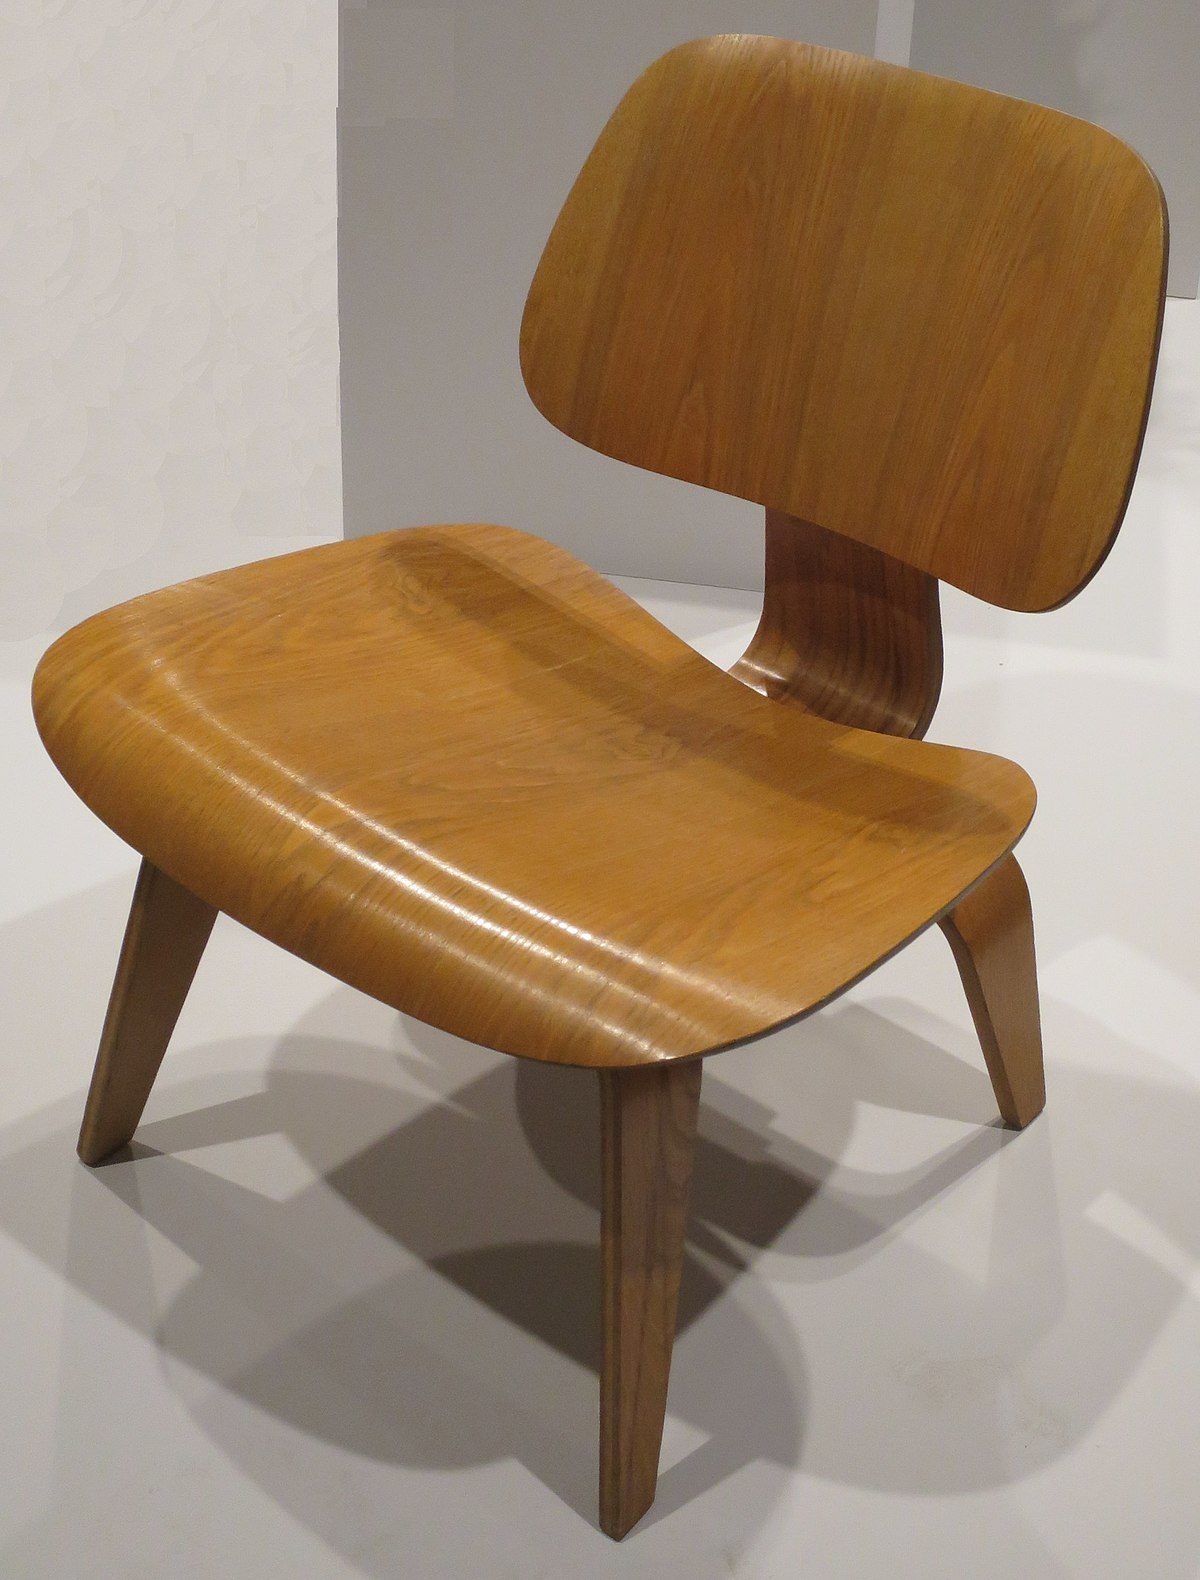 Eames Lounge Chair Wood Wikipedia